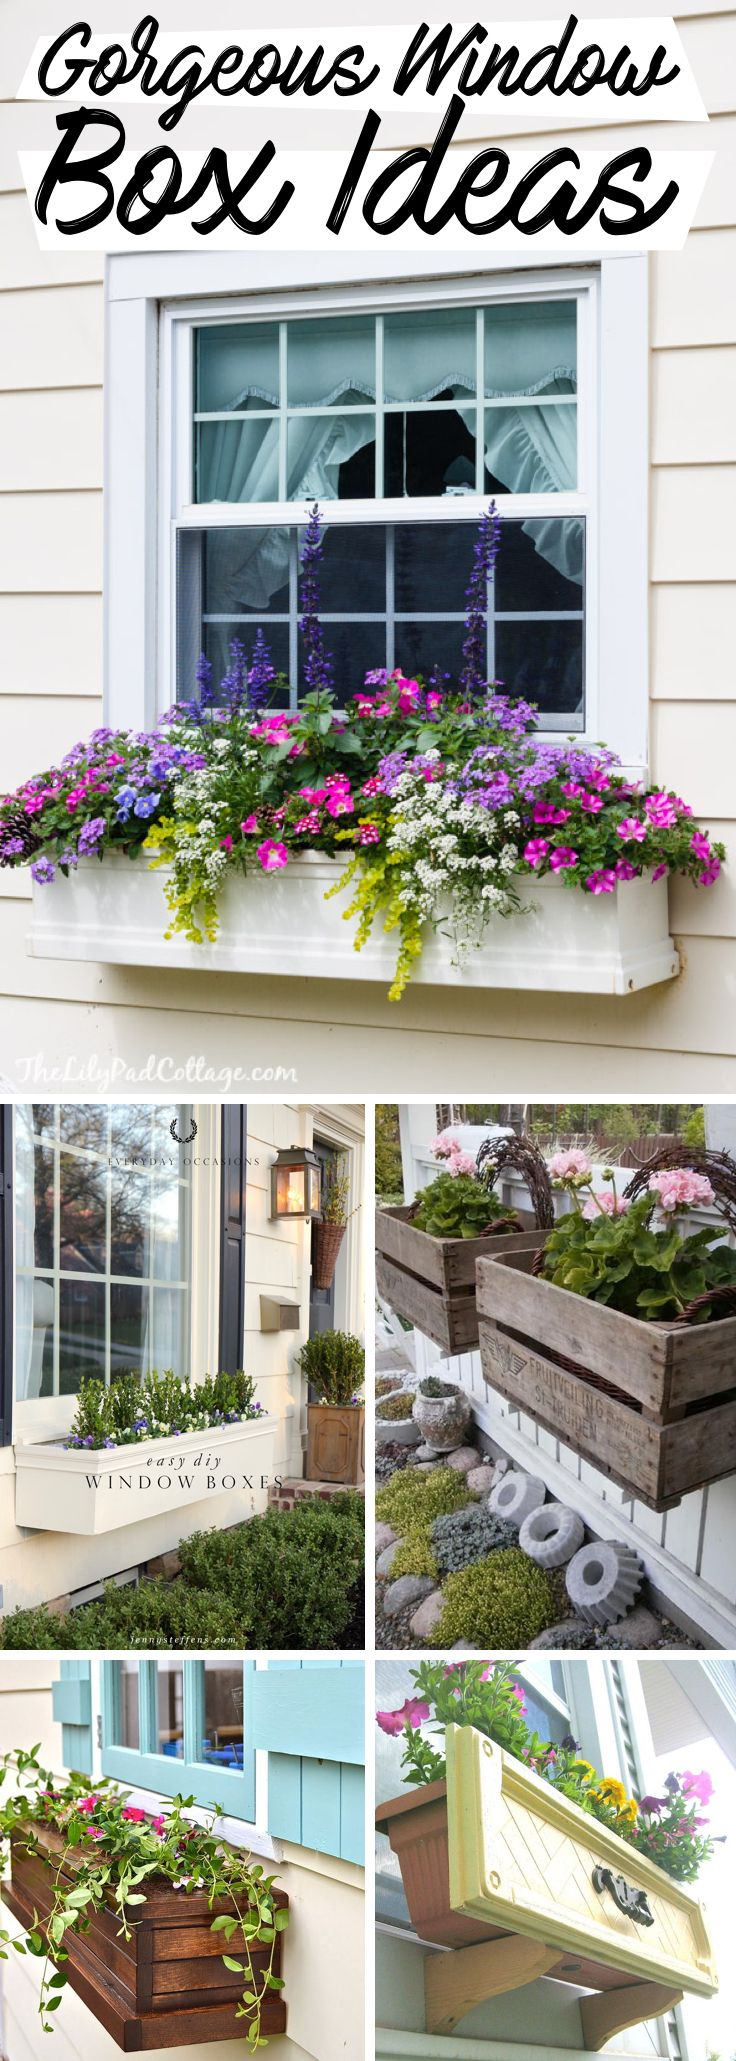 20 Gorgeous Window Box Ideas Adding Floral Magnificence To Your Home!